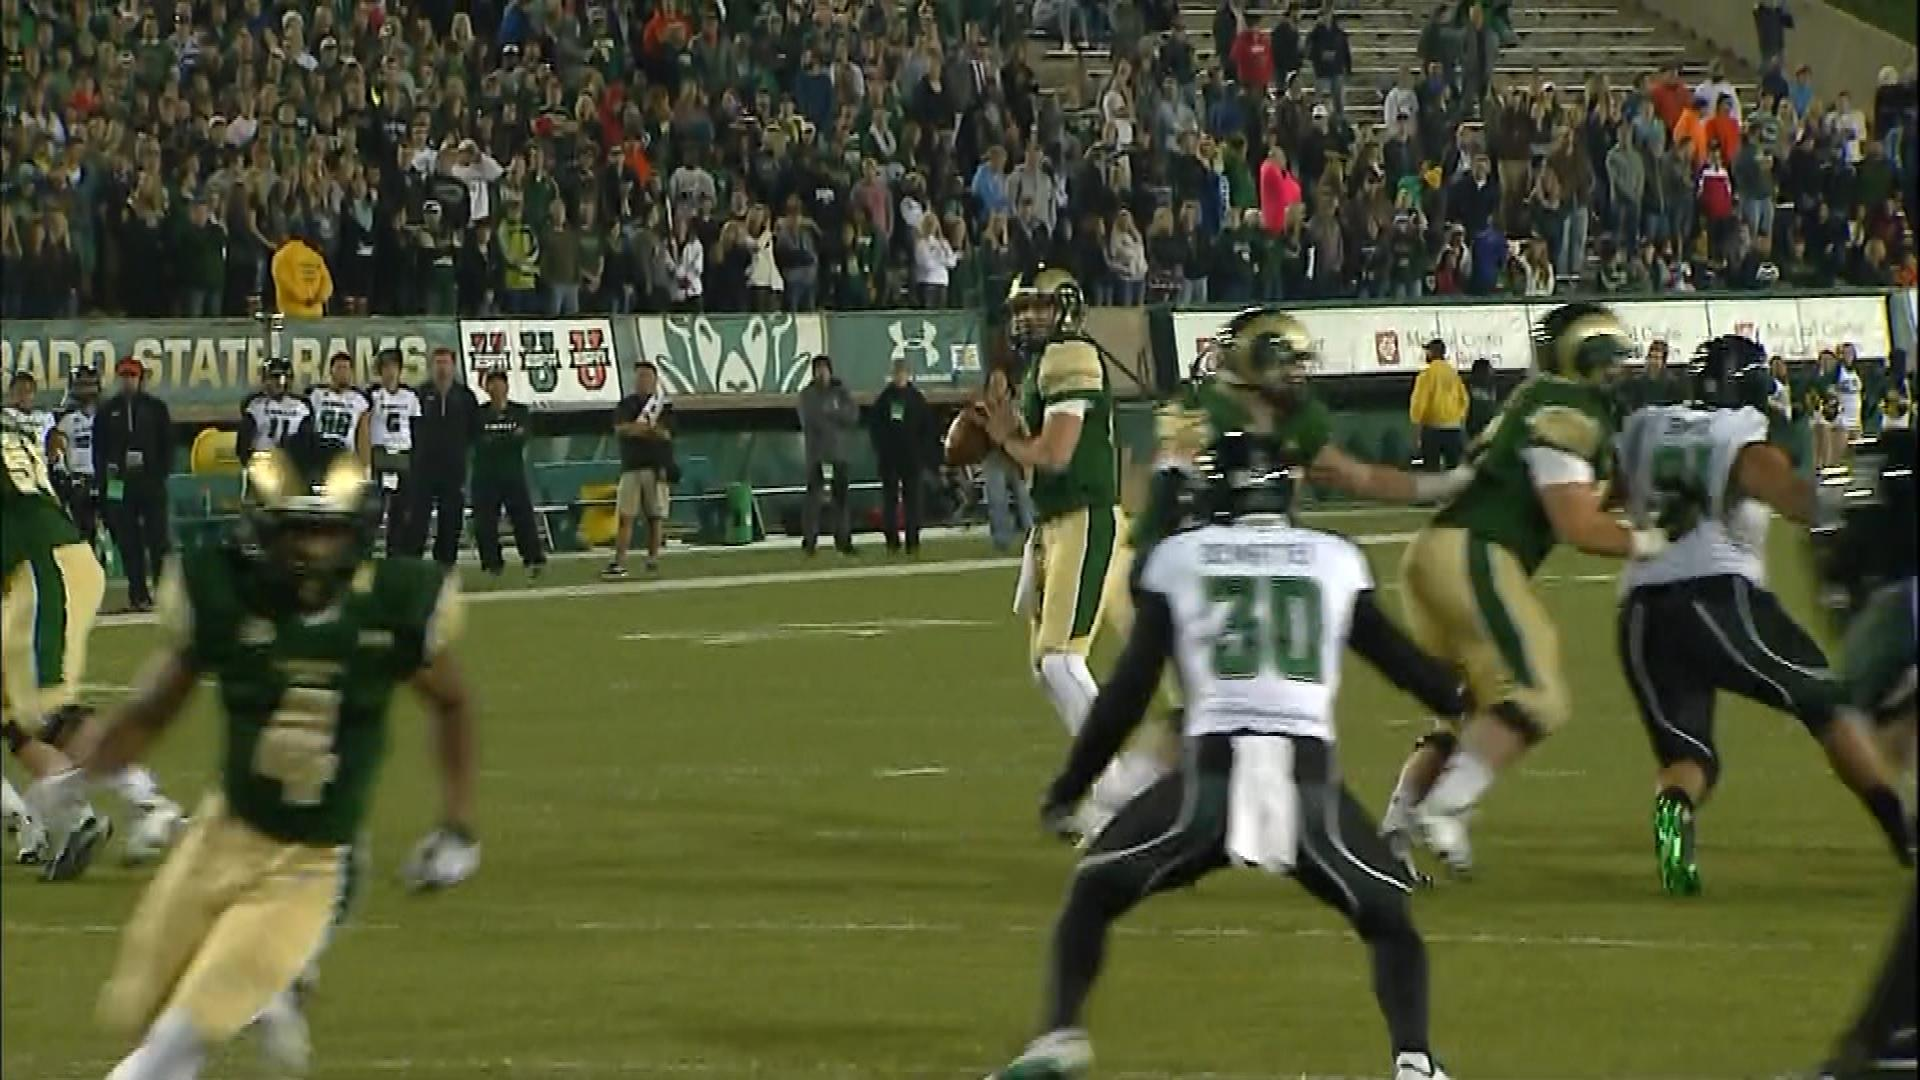 Quarterback Garrett Grayson of the CSU Rams against Hawaii on Saturday (credit: CBS)